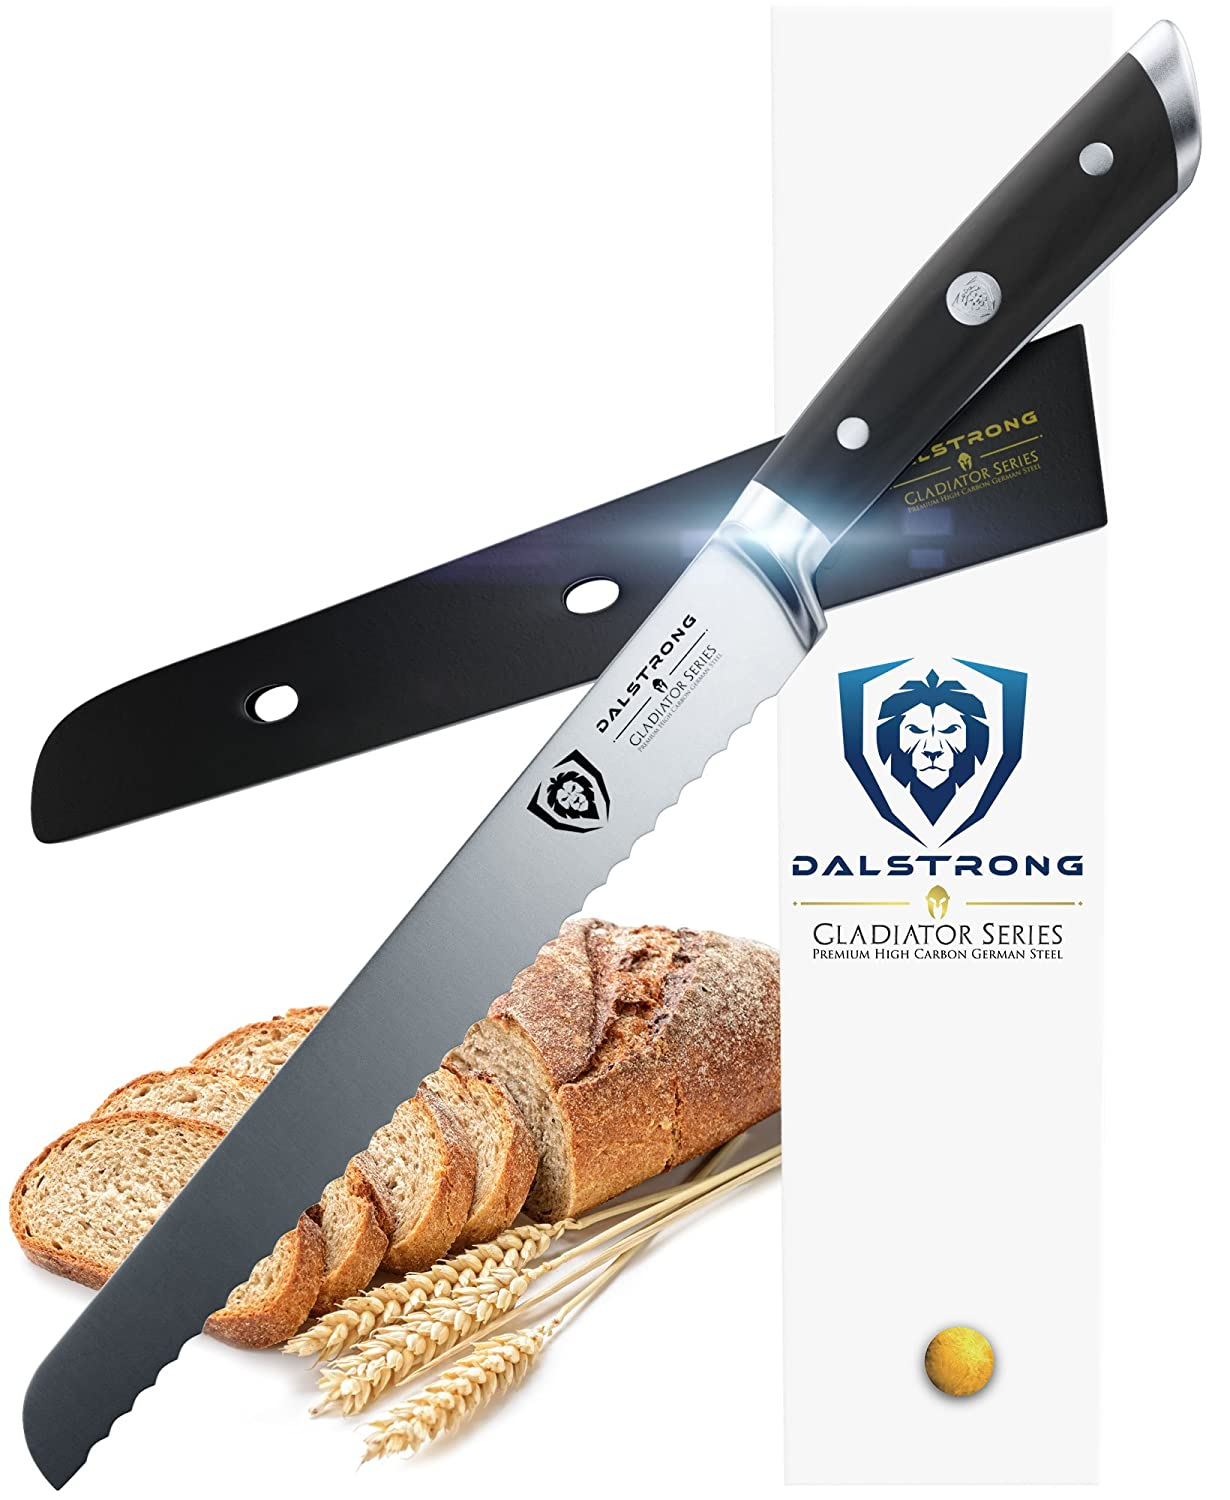 Amazon.com: DALSTRONG Bread Knife - Gladiator Series - German HC ...